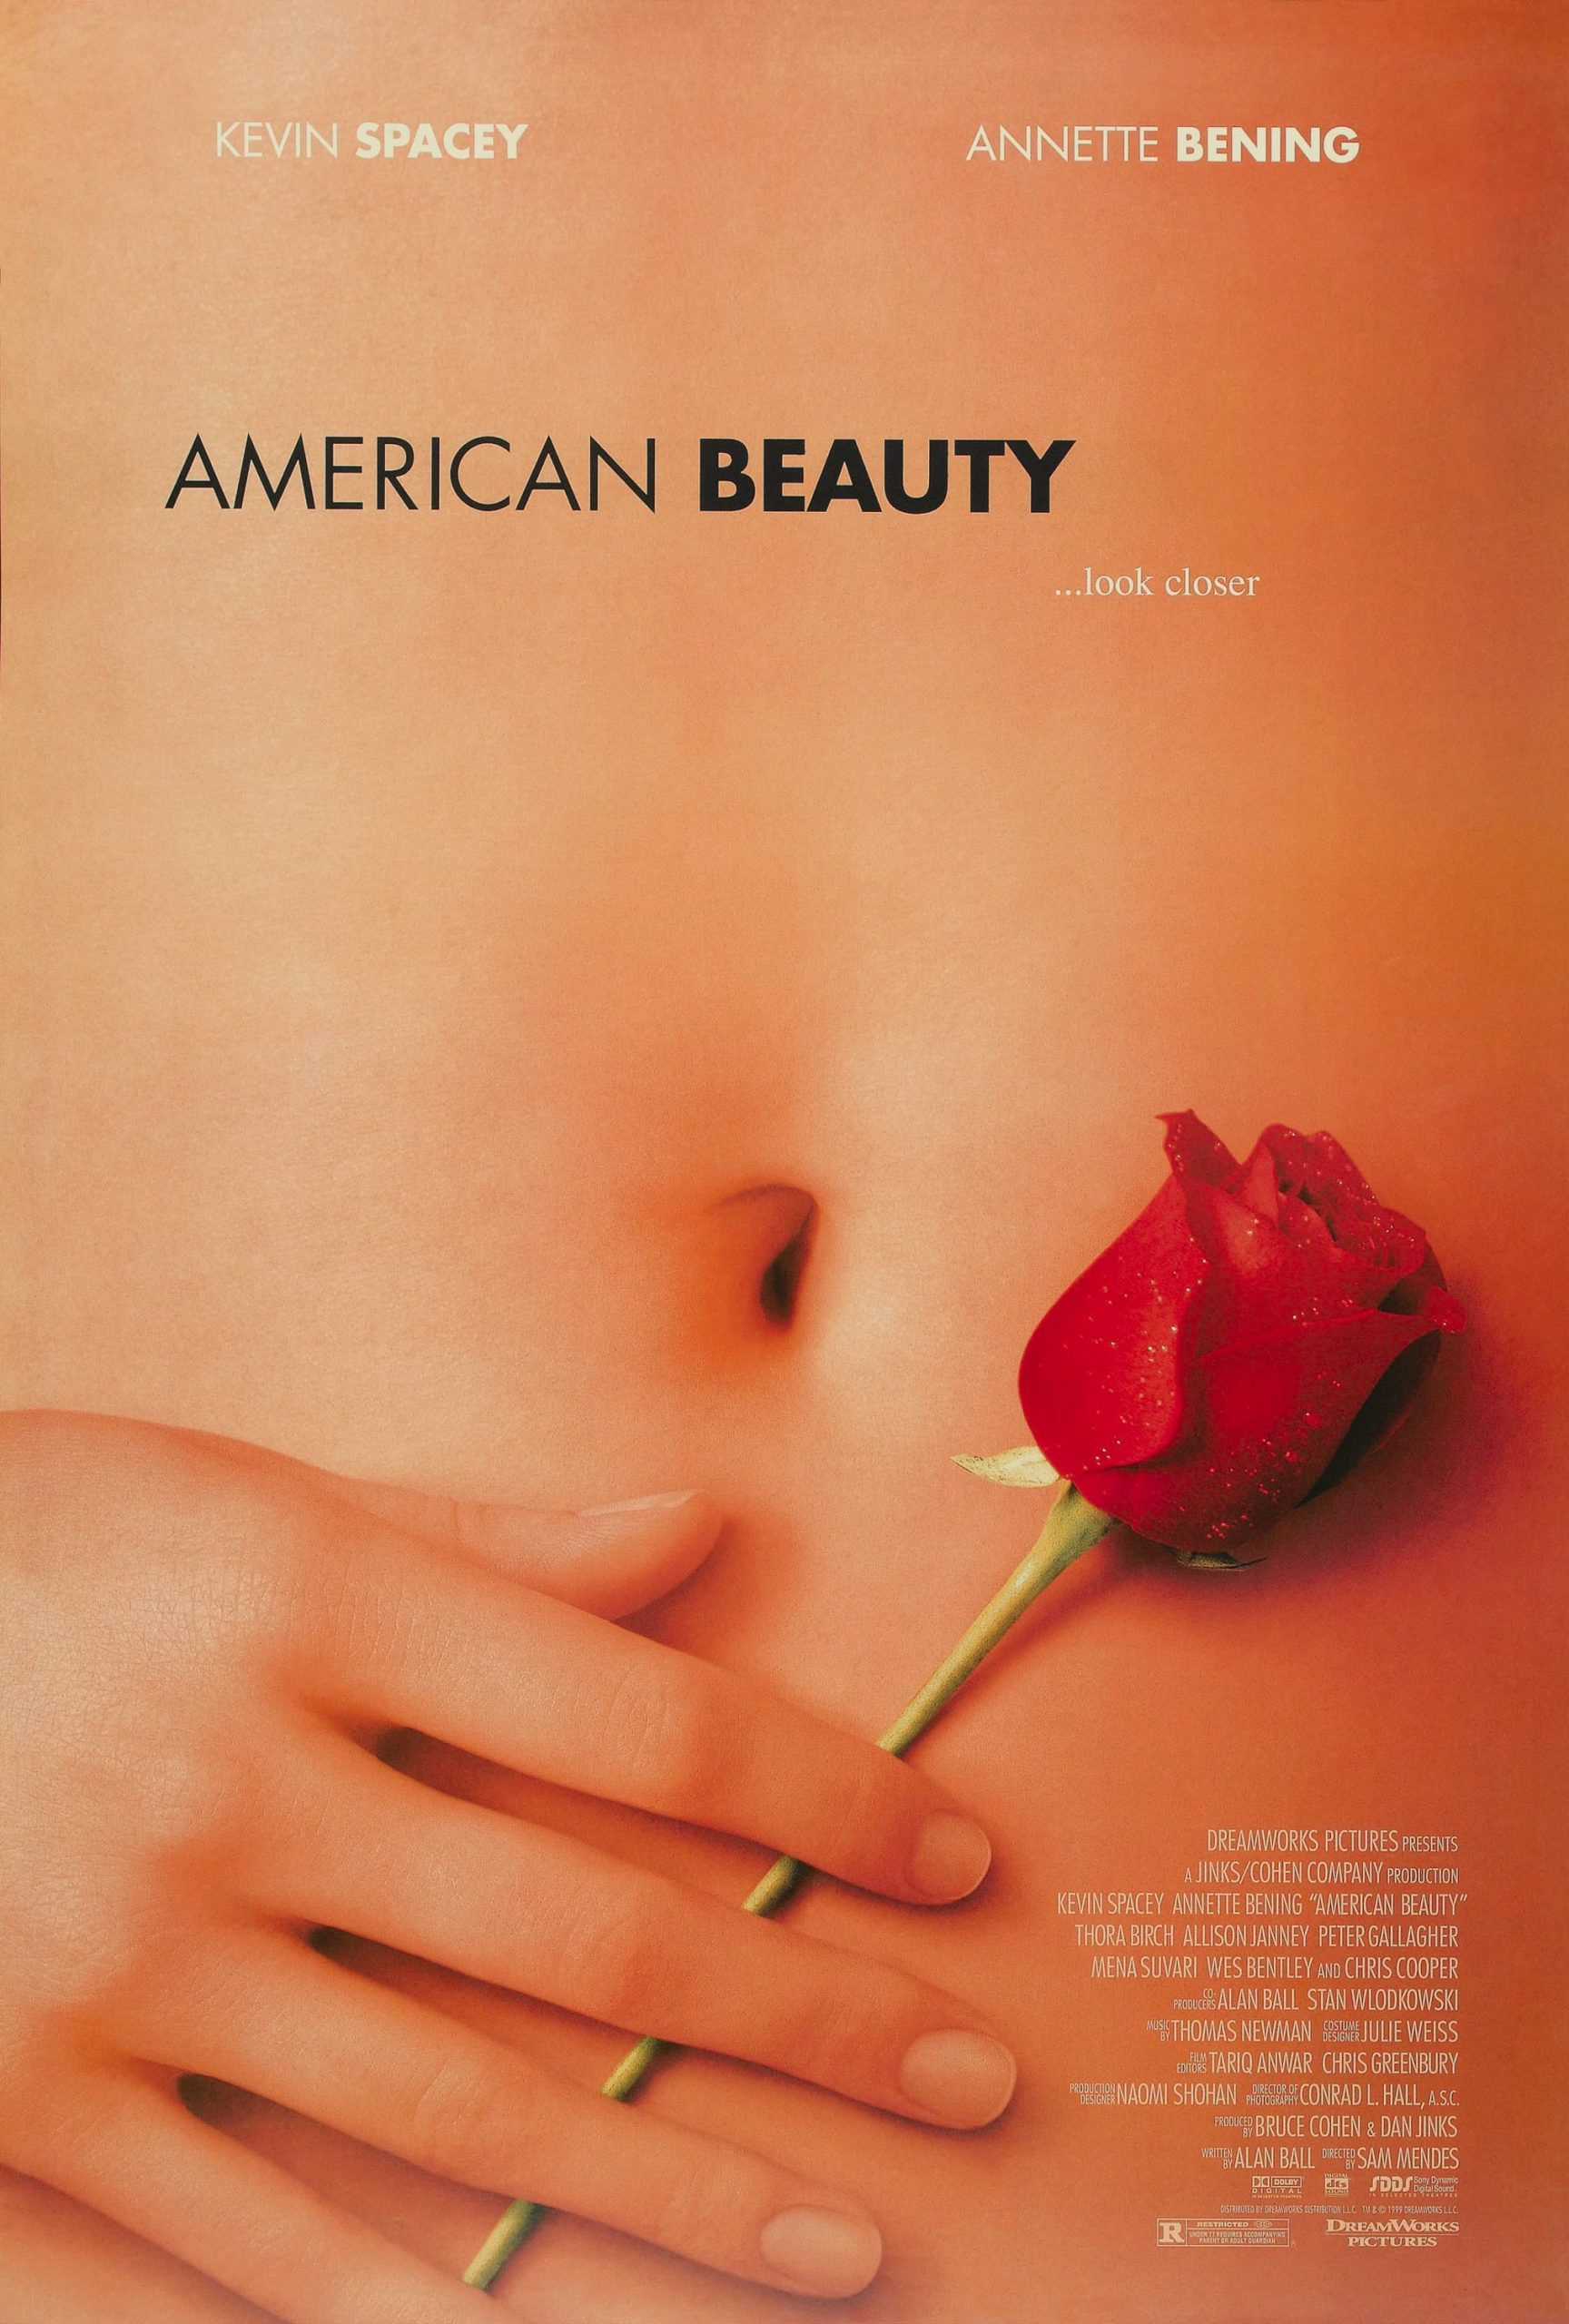 The poster for American Beauty